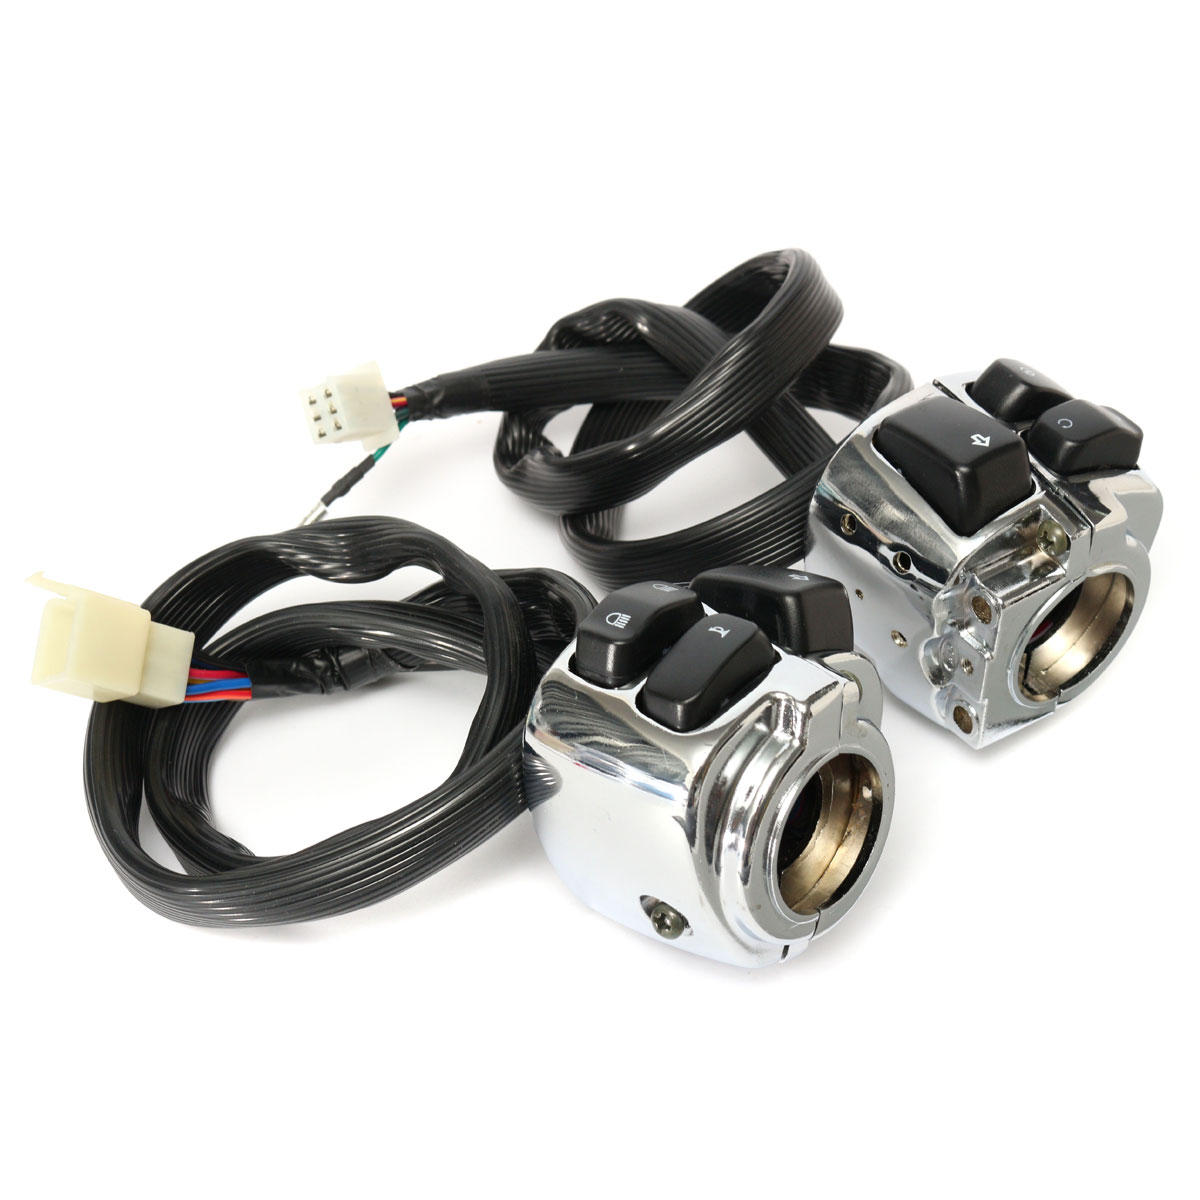 hight resolution of 1 inch handlebar control switches with wiring harness for harley motorcycle sale banggood com sold out